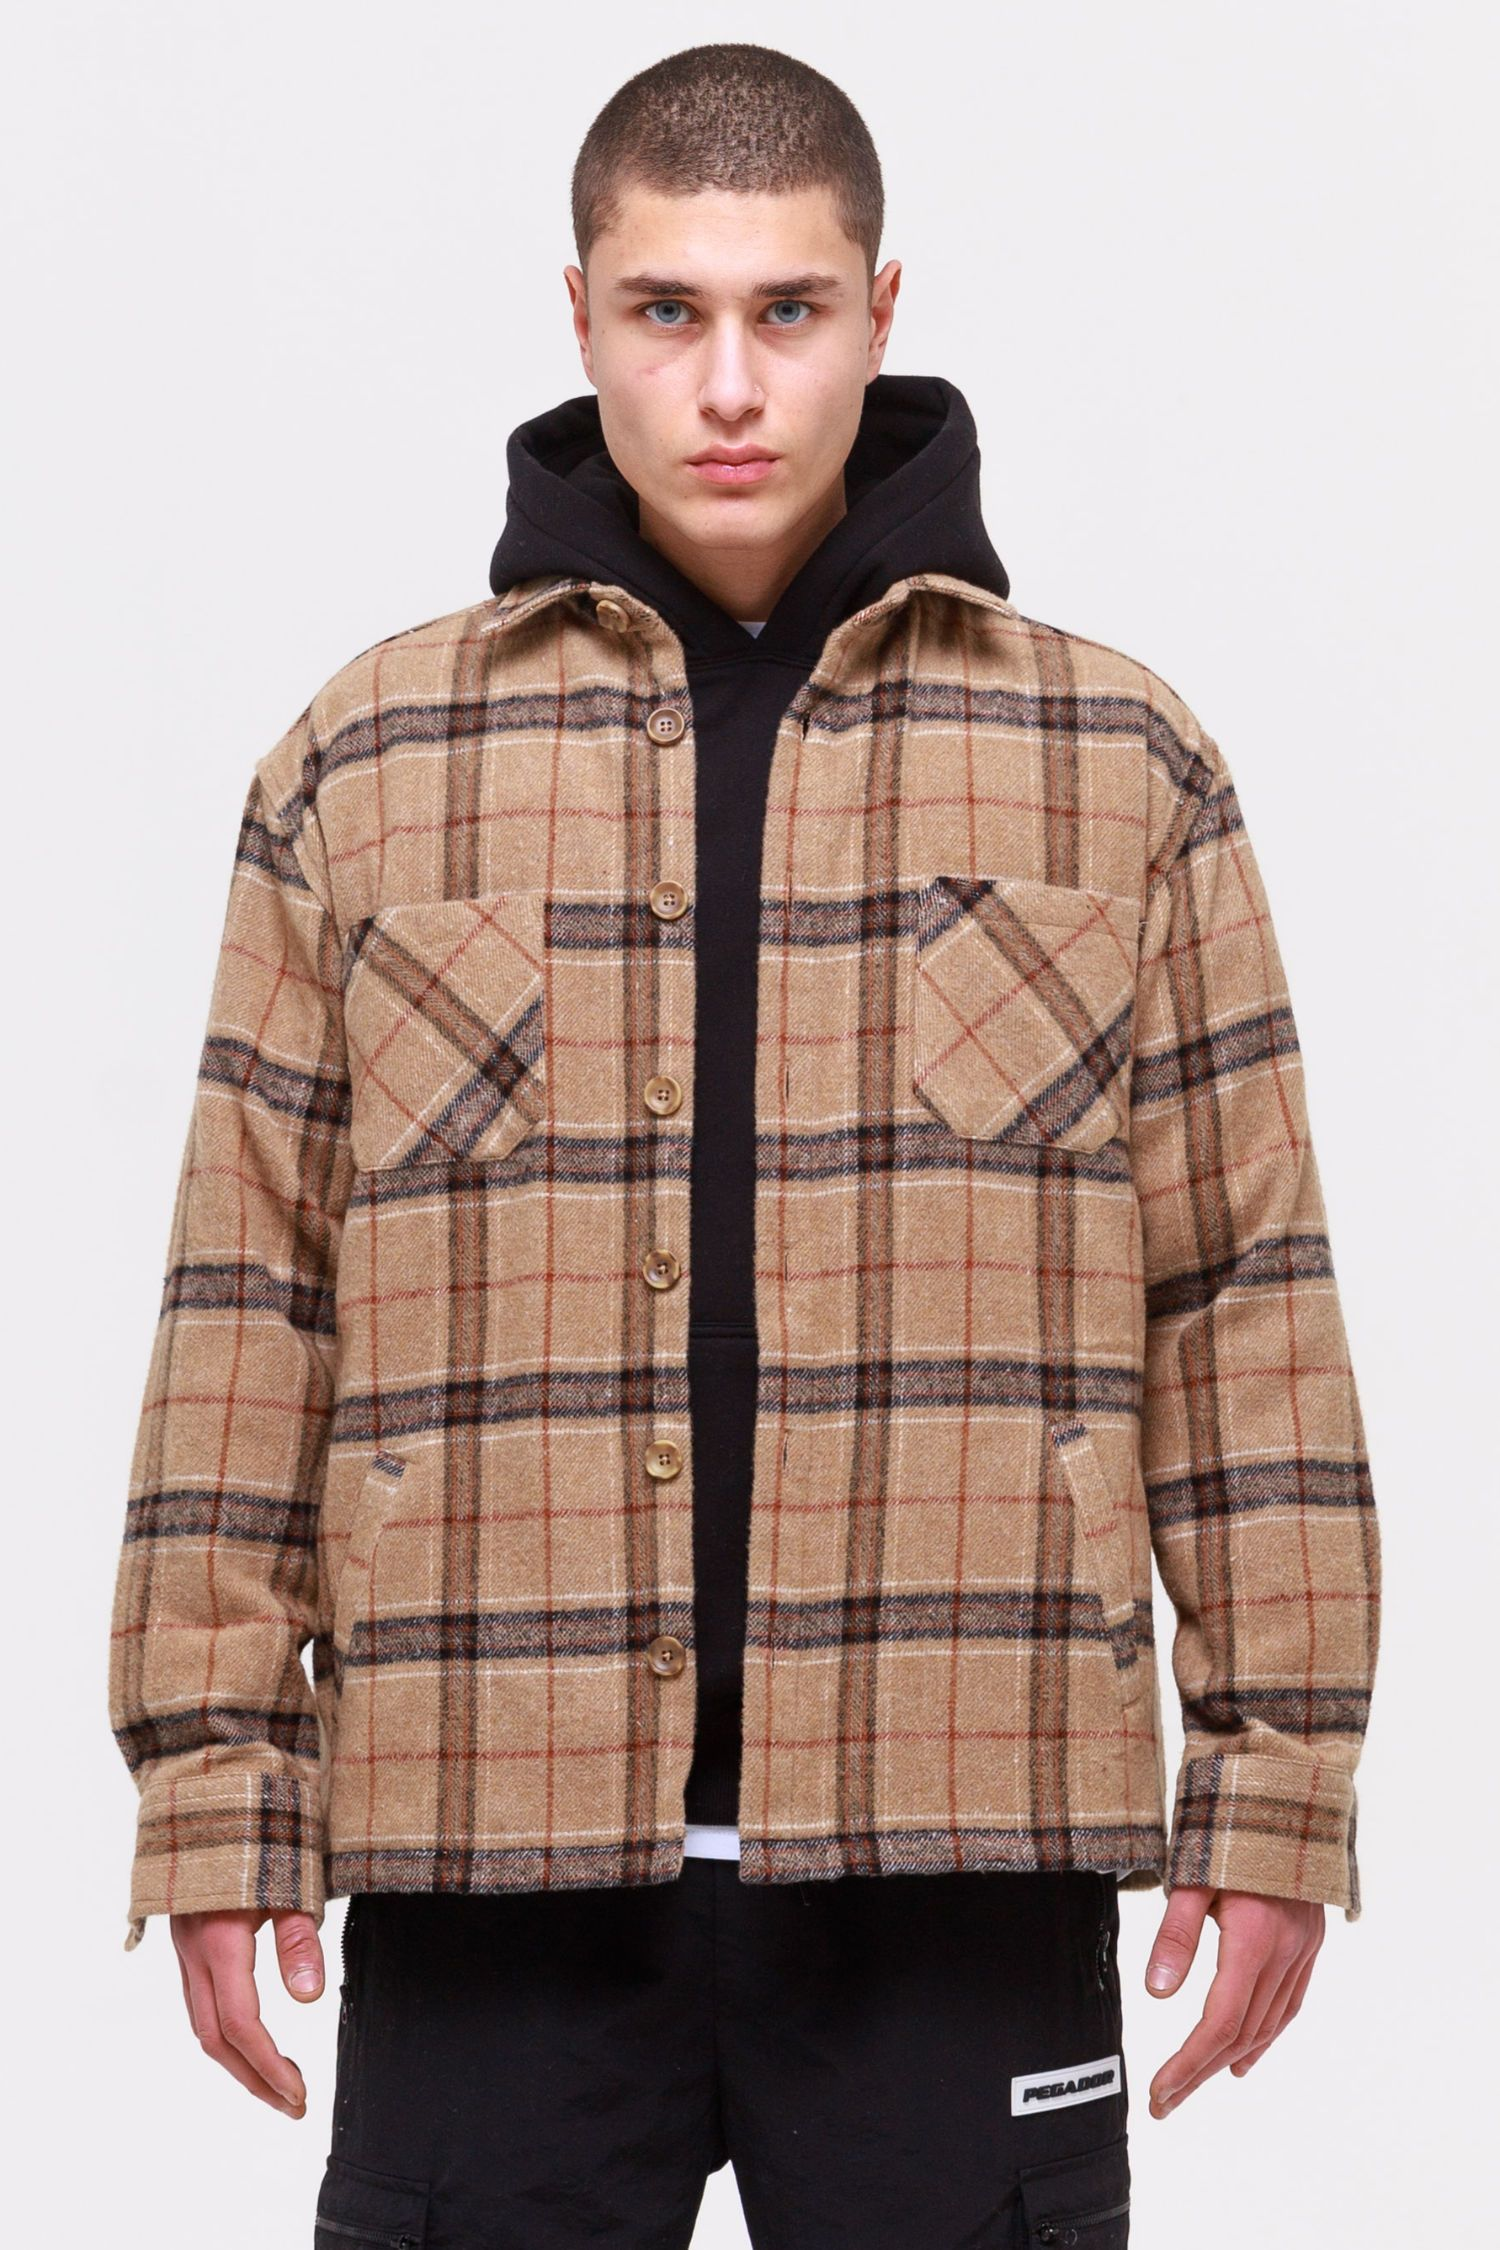 Flato Heavy Wool Flannel Shirt Valley SHIRT Wild Society